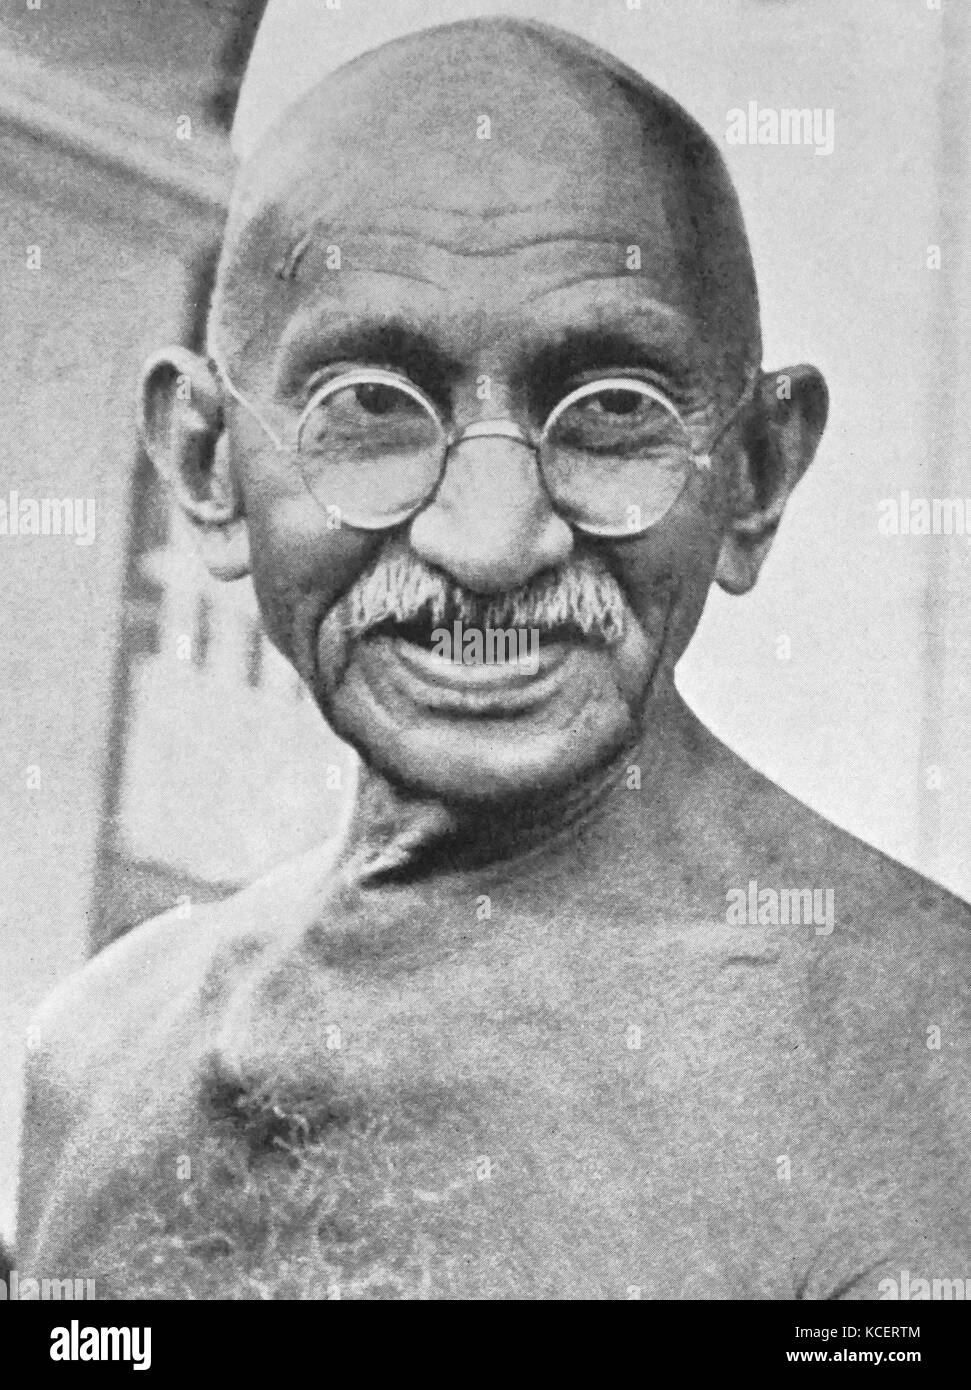 a biography of mohandas k gandhi a leader of the indian independence movement Mahatma gandhi essay examples  a leader in the indian independence movement  a biography and life work of mohandas k gandhi and the force or firmness of .